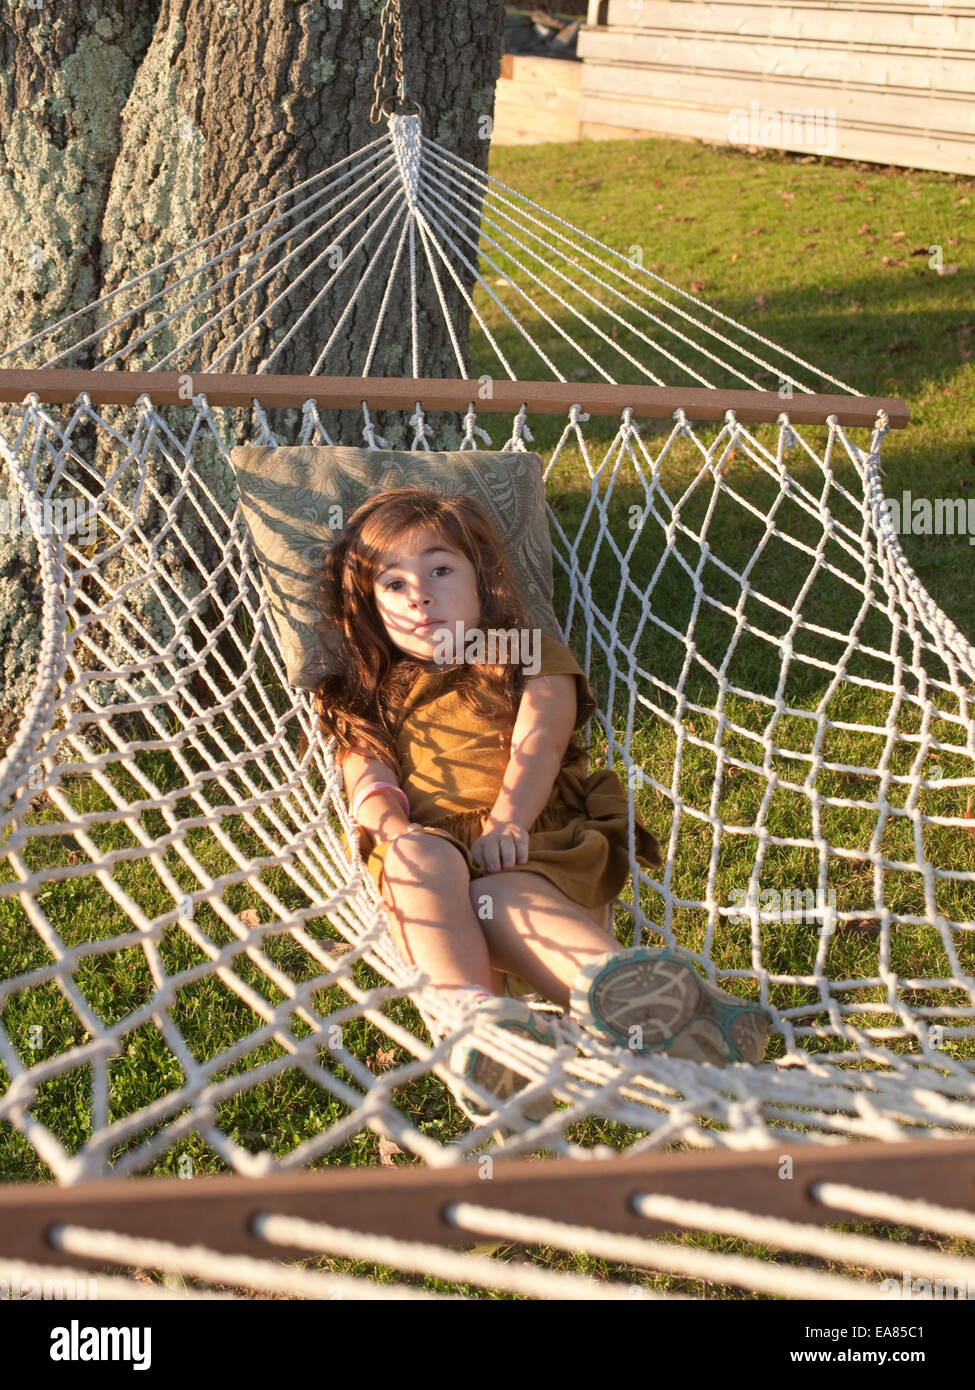 young girl in hammock on yard - Stock Image